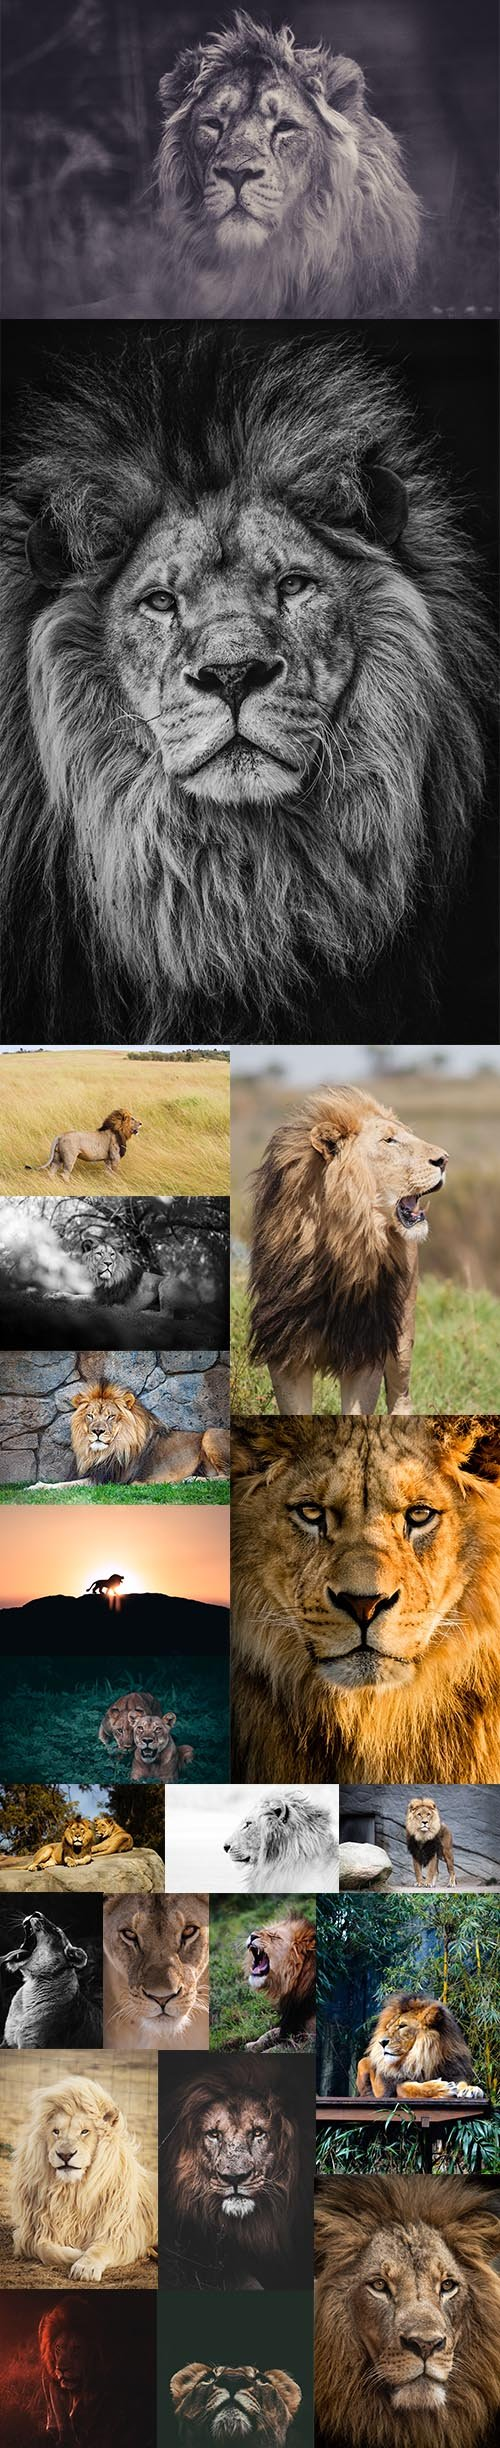 Lion - Premium UHQ Stock Photo Bundle